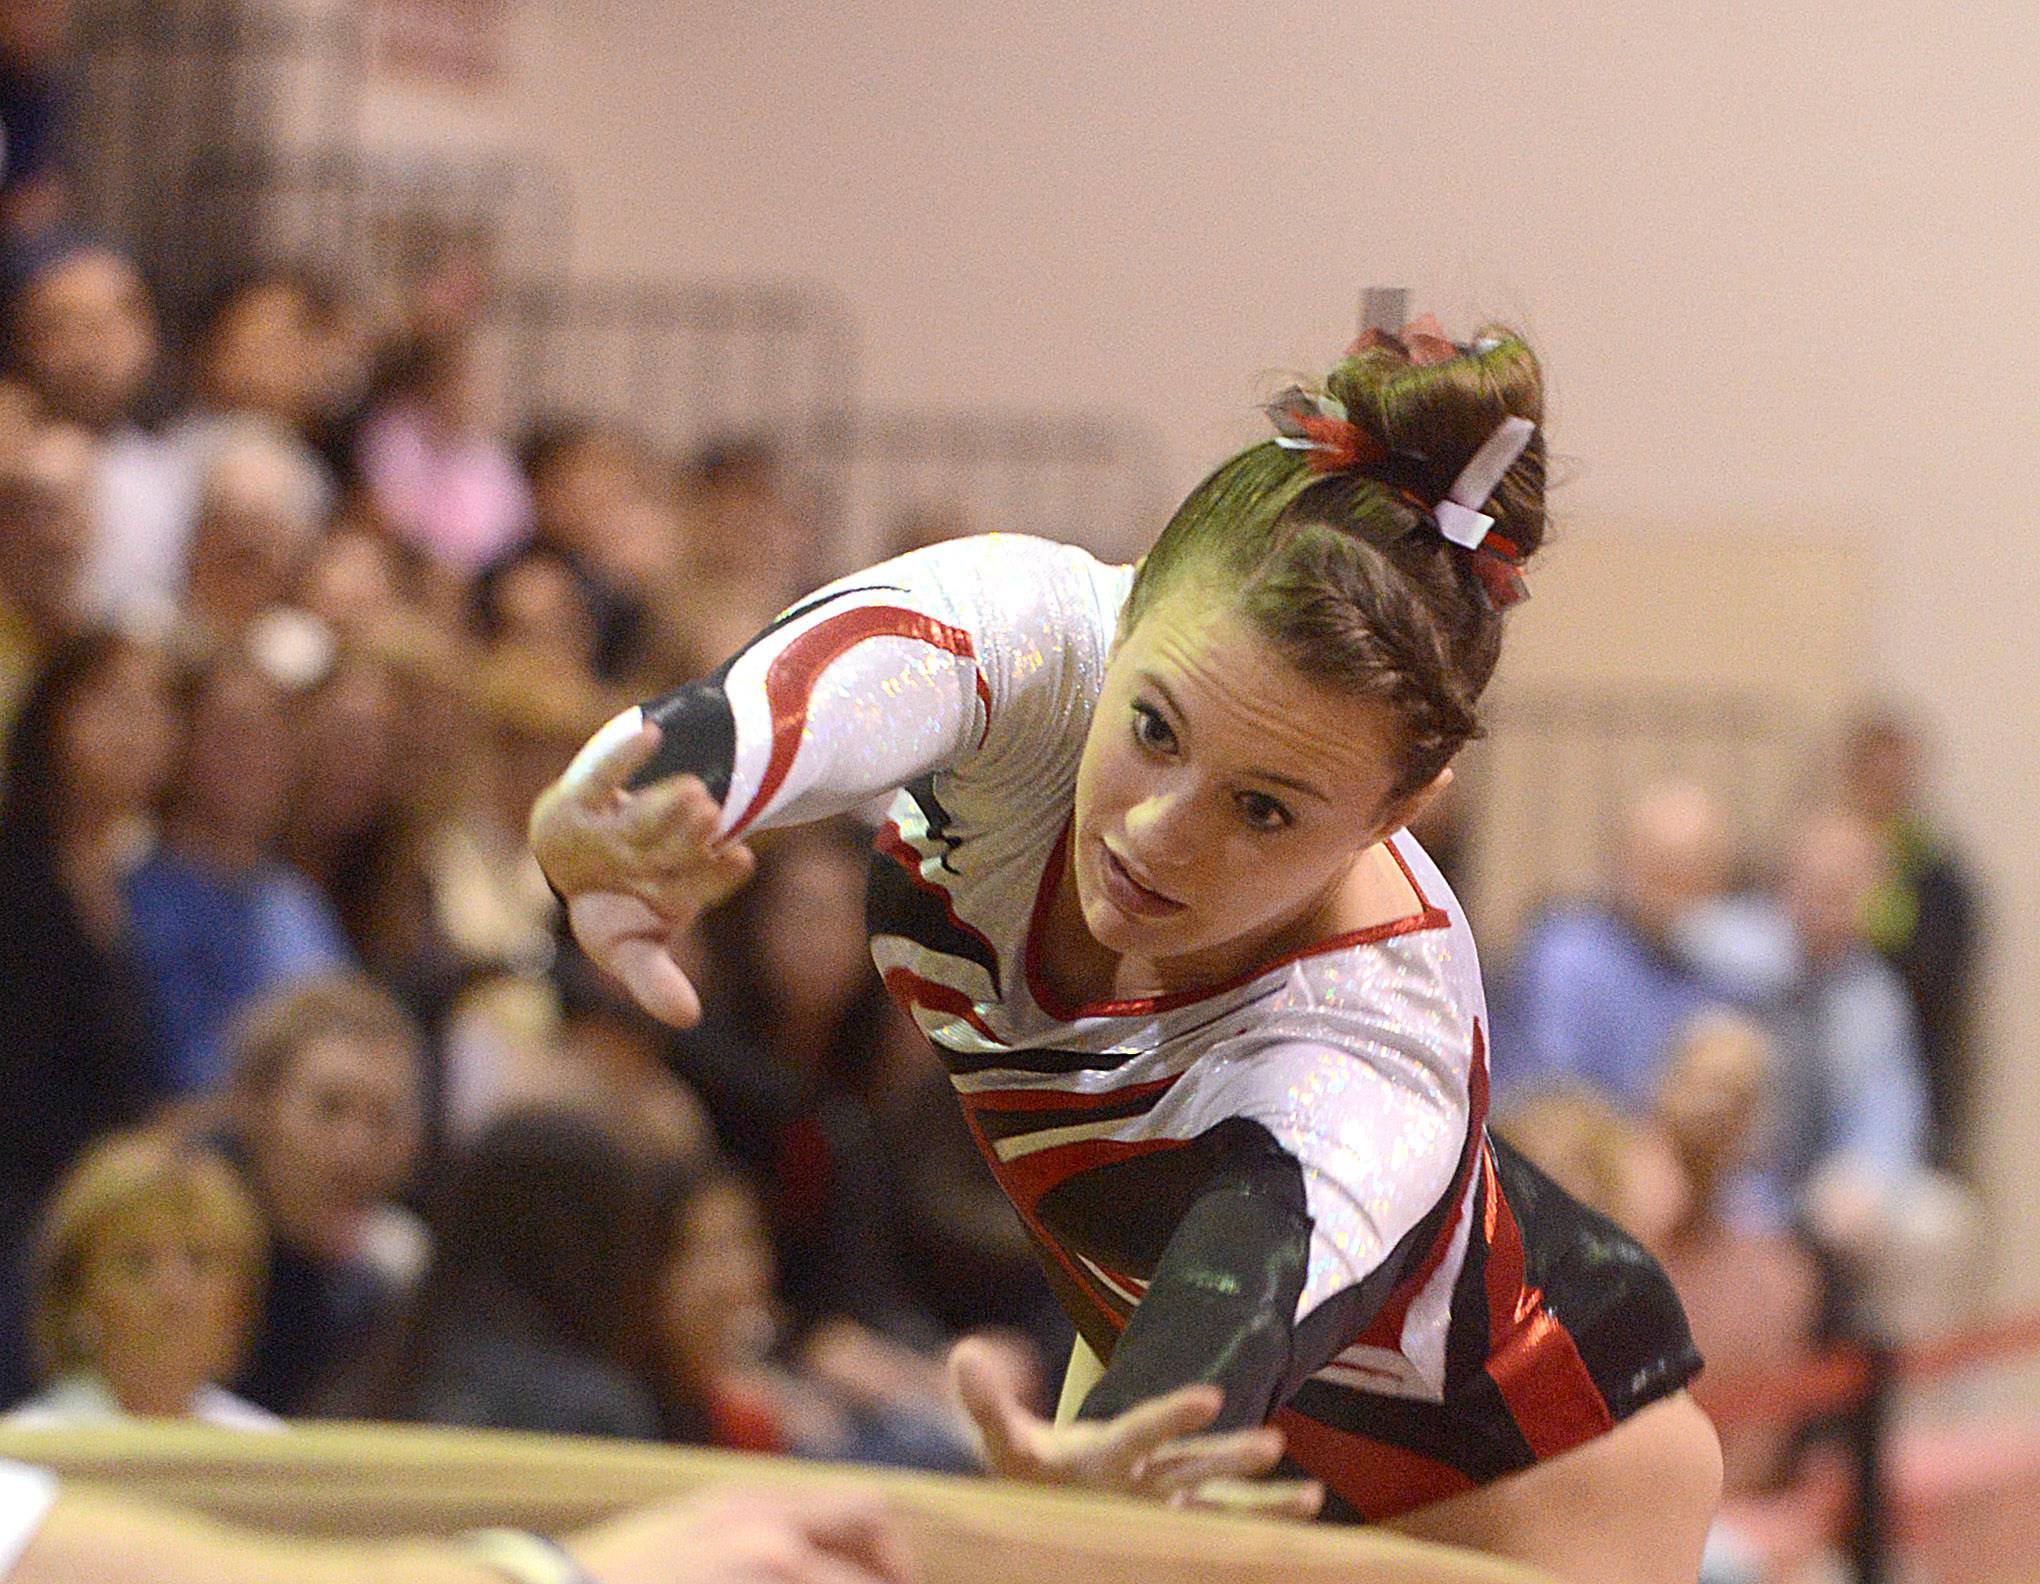 Barrington's Molly Blanke competes in the vault during the girl's regional gymnastics meet in Barrington on Monday.